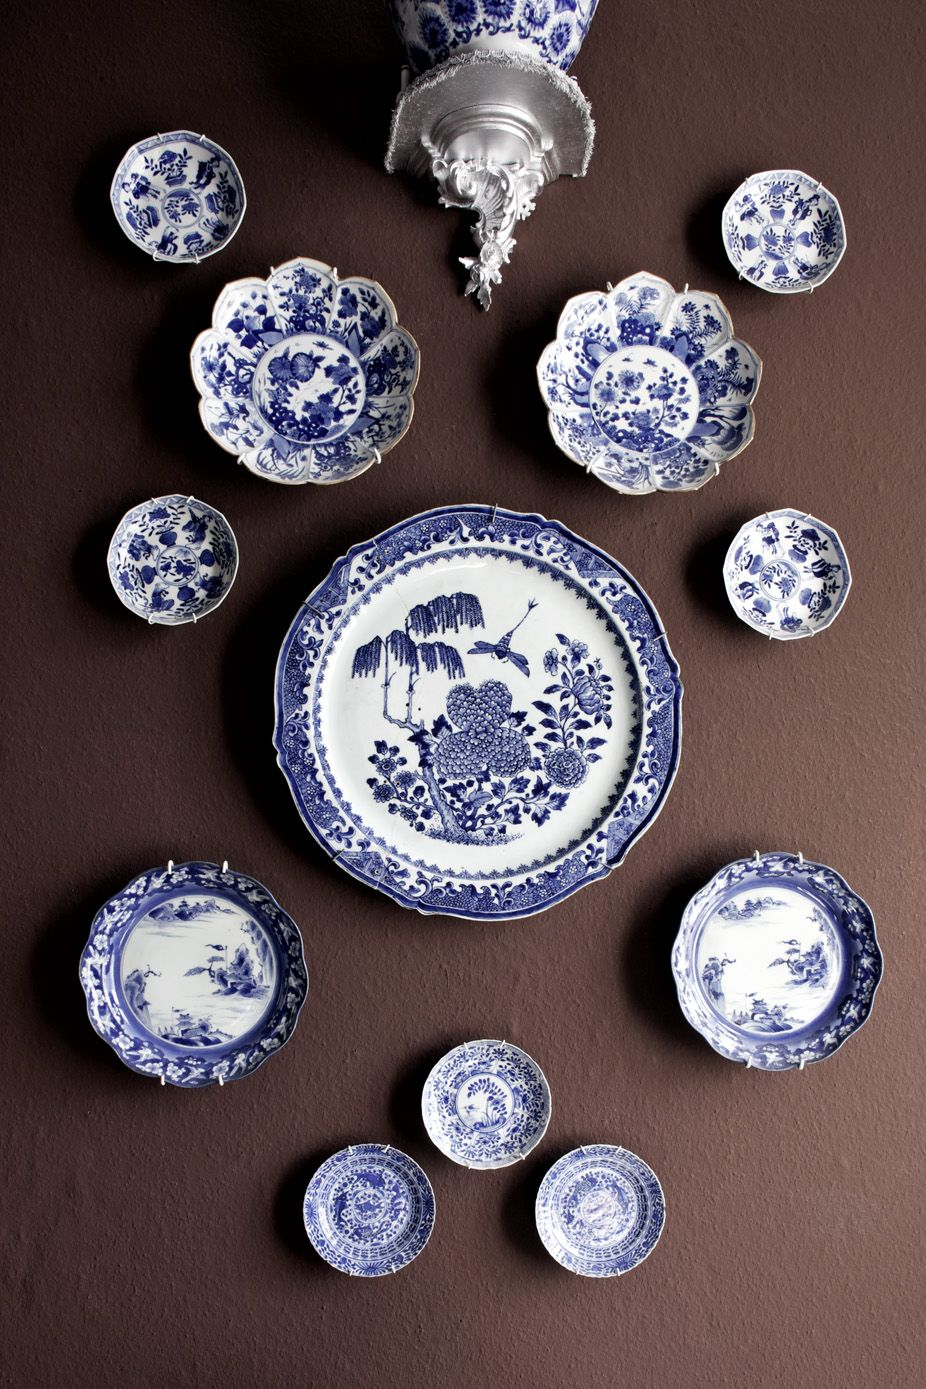 Blue And White Decorative Wall Plates Simple Antikt Porslin Och Rokoko  Hanging Plates Blue Plates And Plate Wall Inspiration